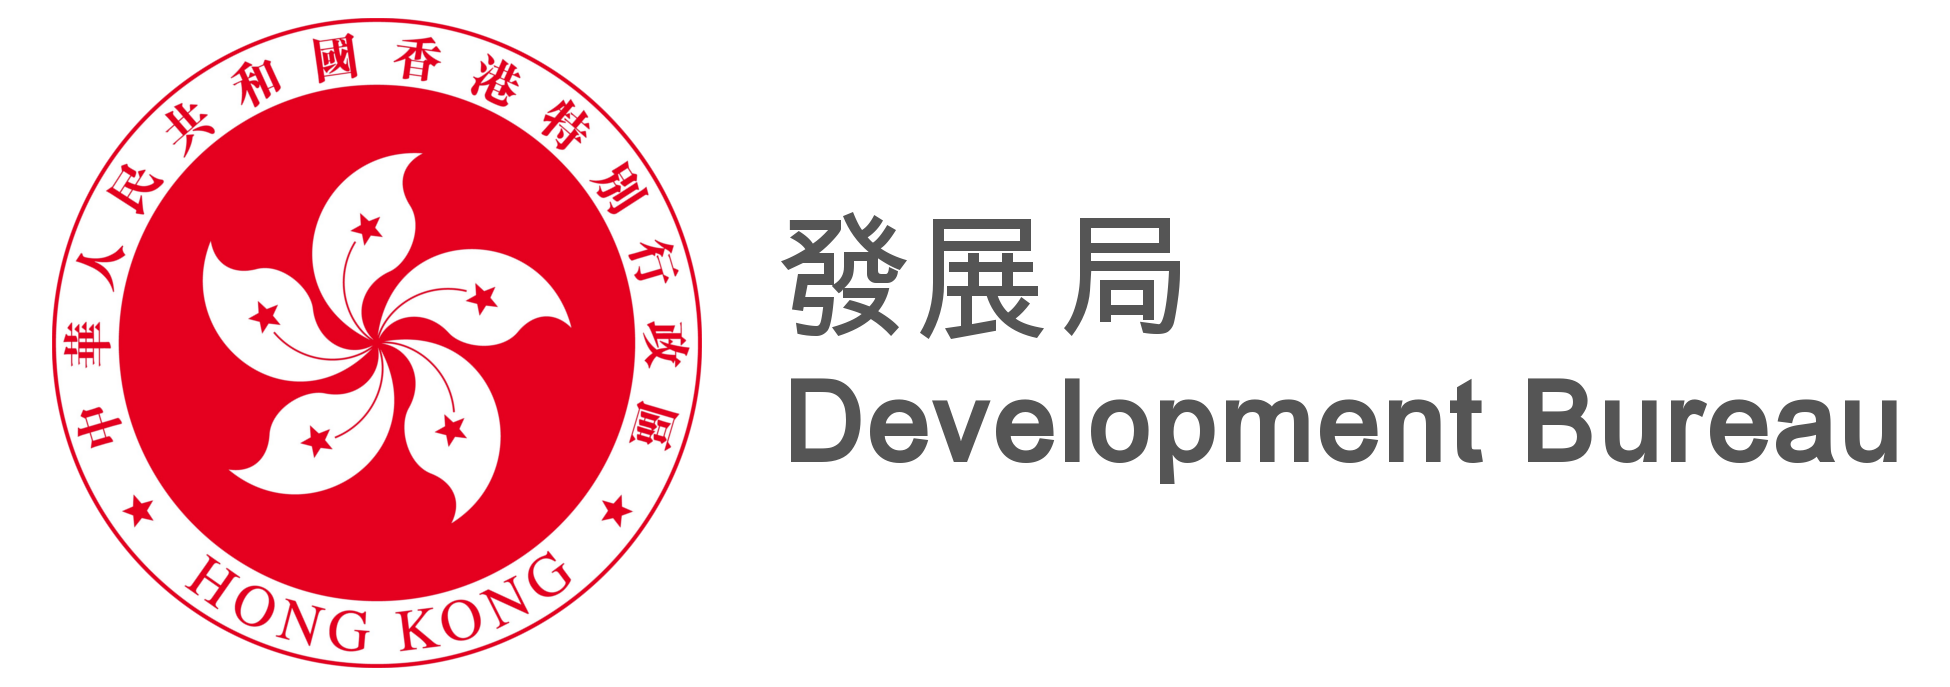 Development Bureau – Pedestrian and Vehicle Flow Analysis (2017, HK)